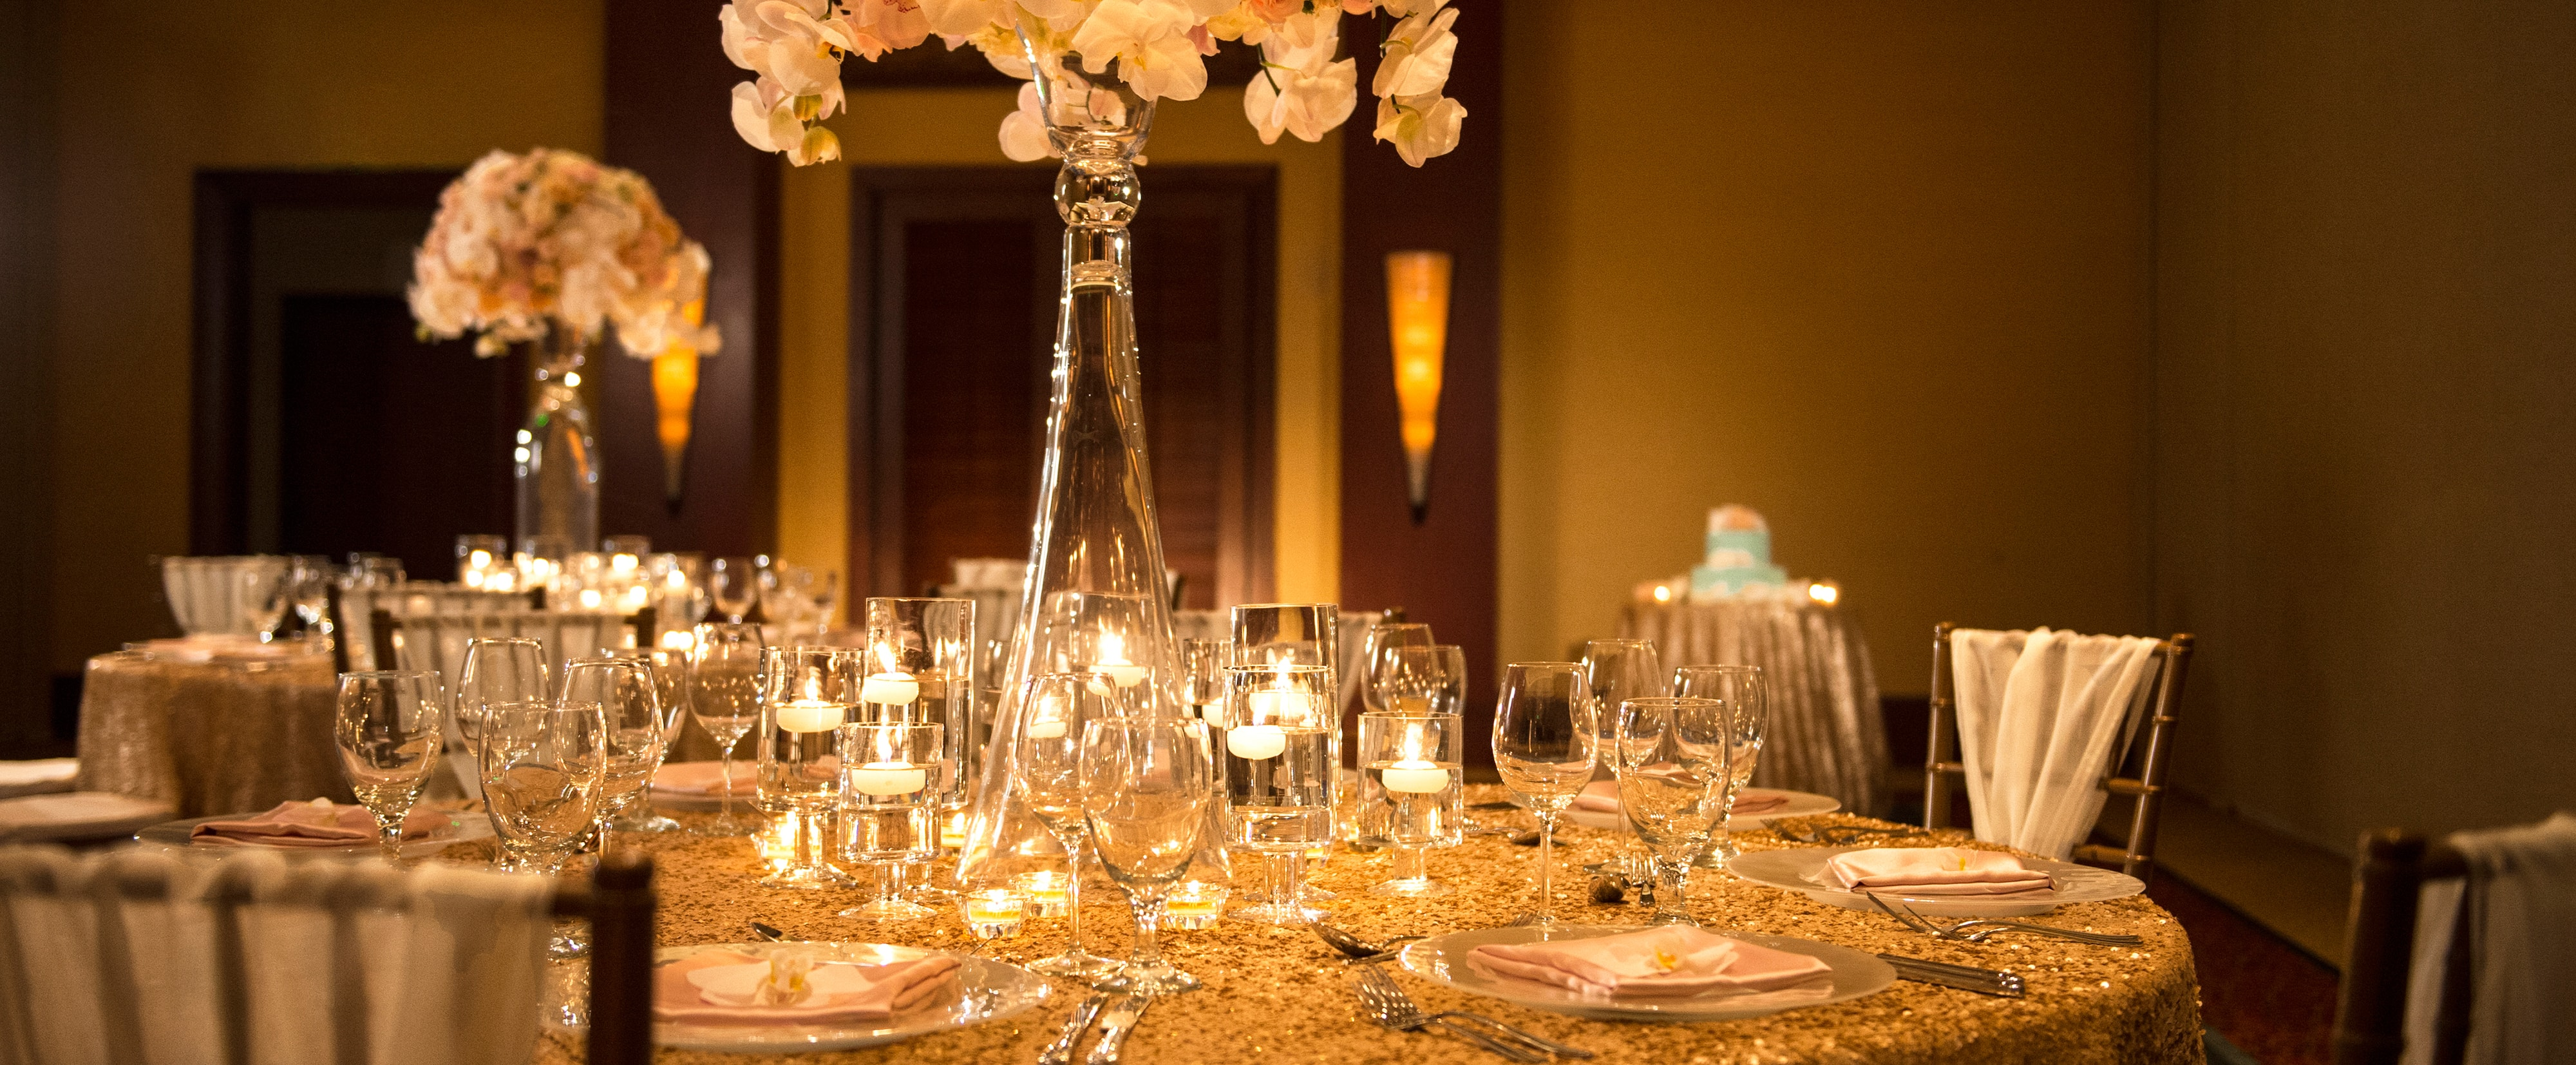 A dinner table in Kaiona Ballroom decorated with flowers and candles